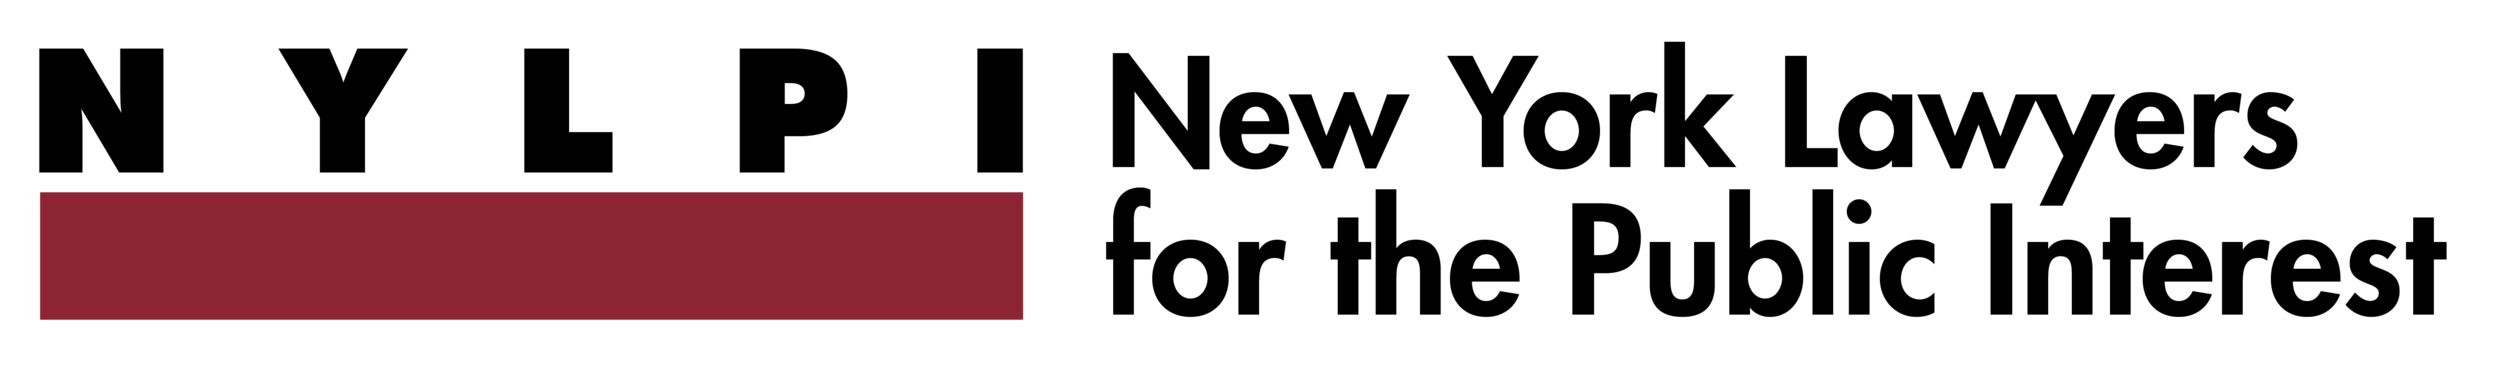 NYLPI-Logo-with-text-on-side-red-bar-black-text1.png